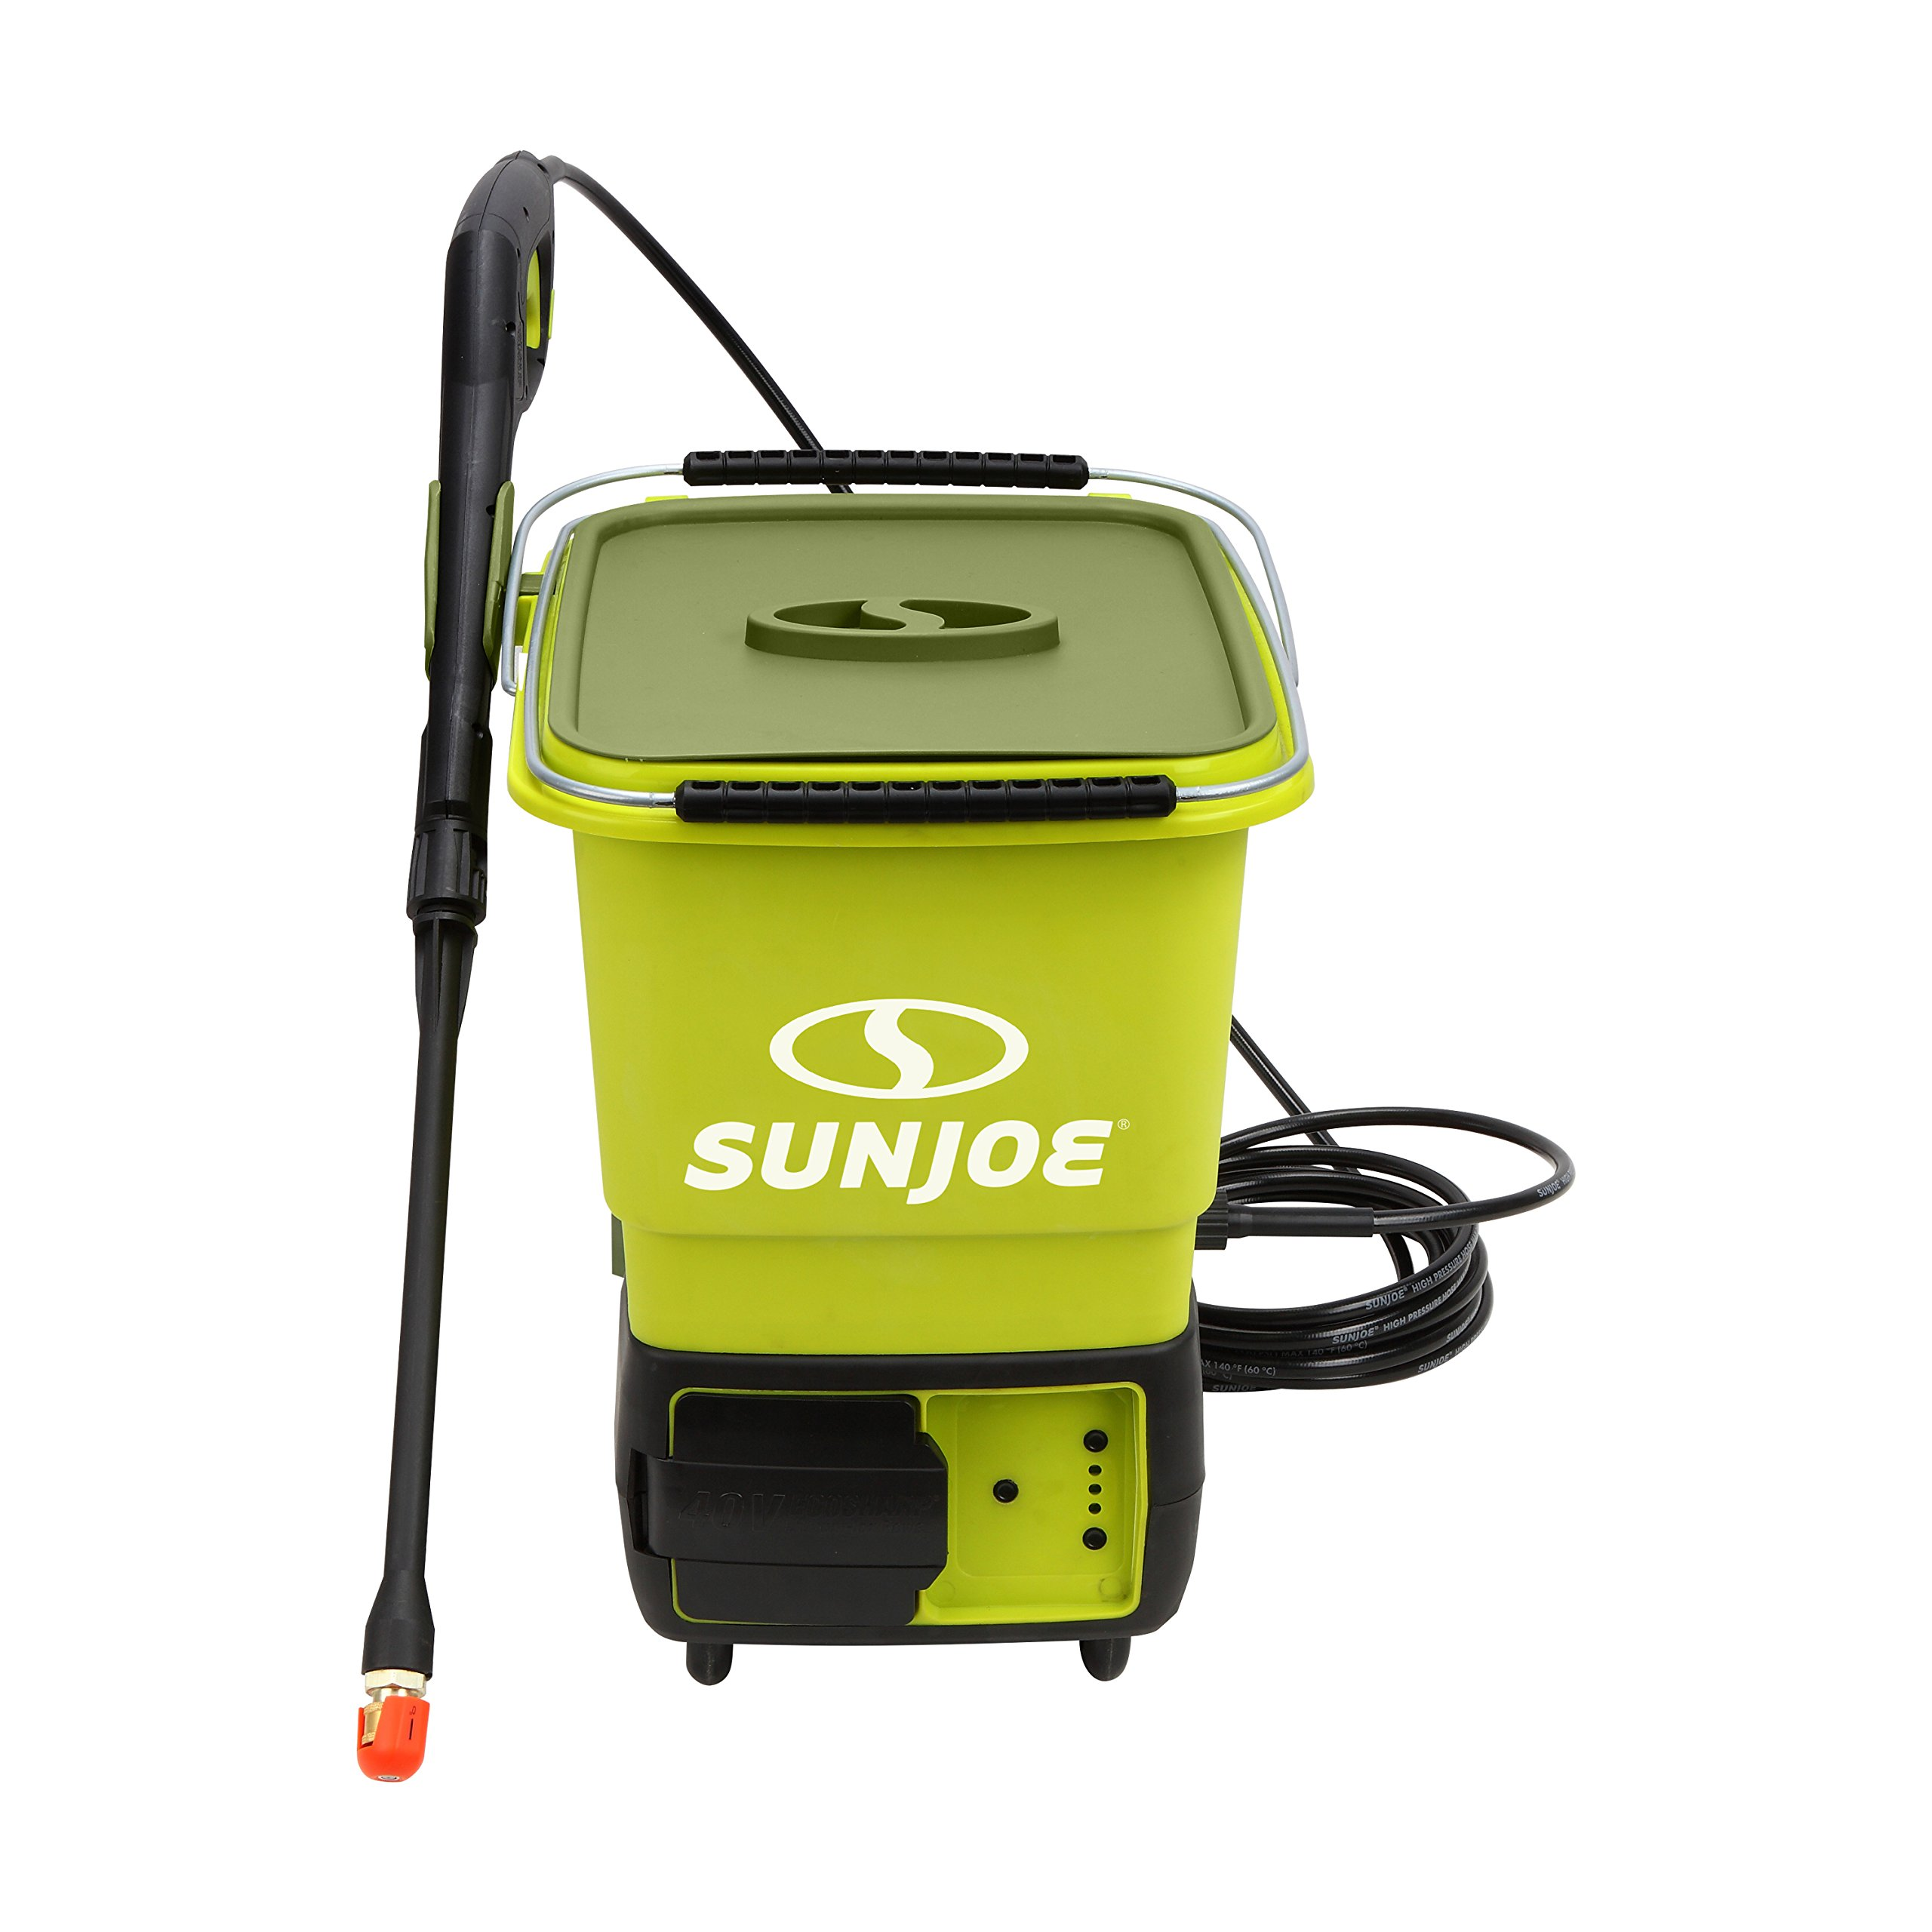 Sun Joe SPX6000C-CT (Core Tool) iON 1160 Max PSI Cordless Pressure Washer (Battery & Charger Not Included)